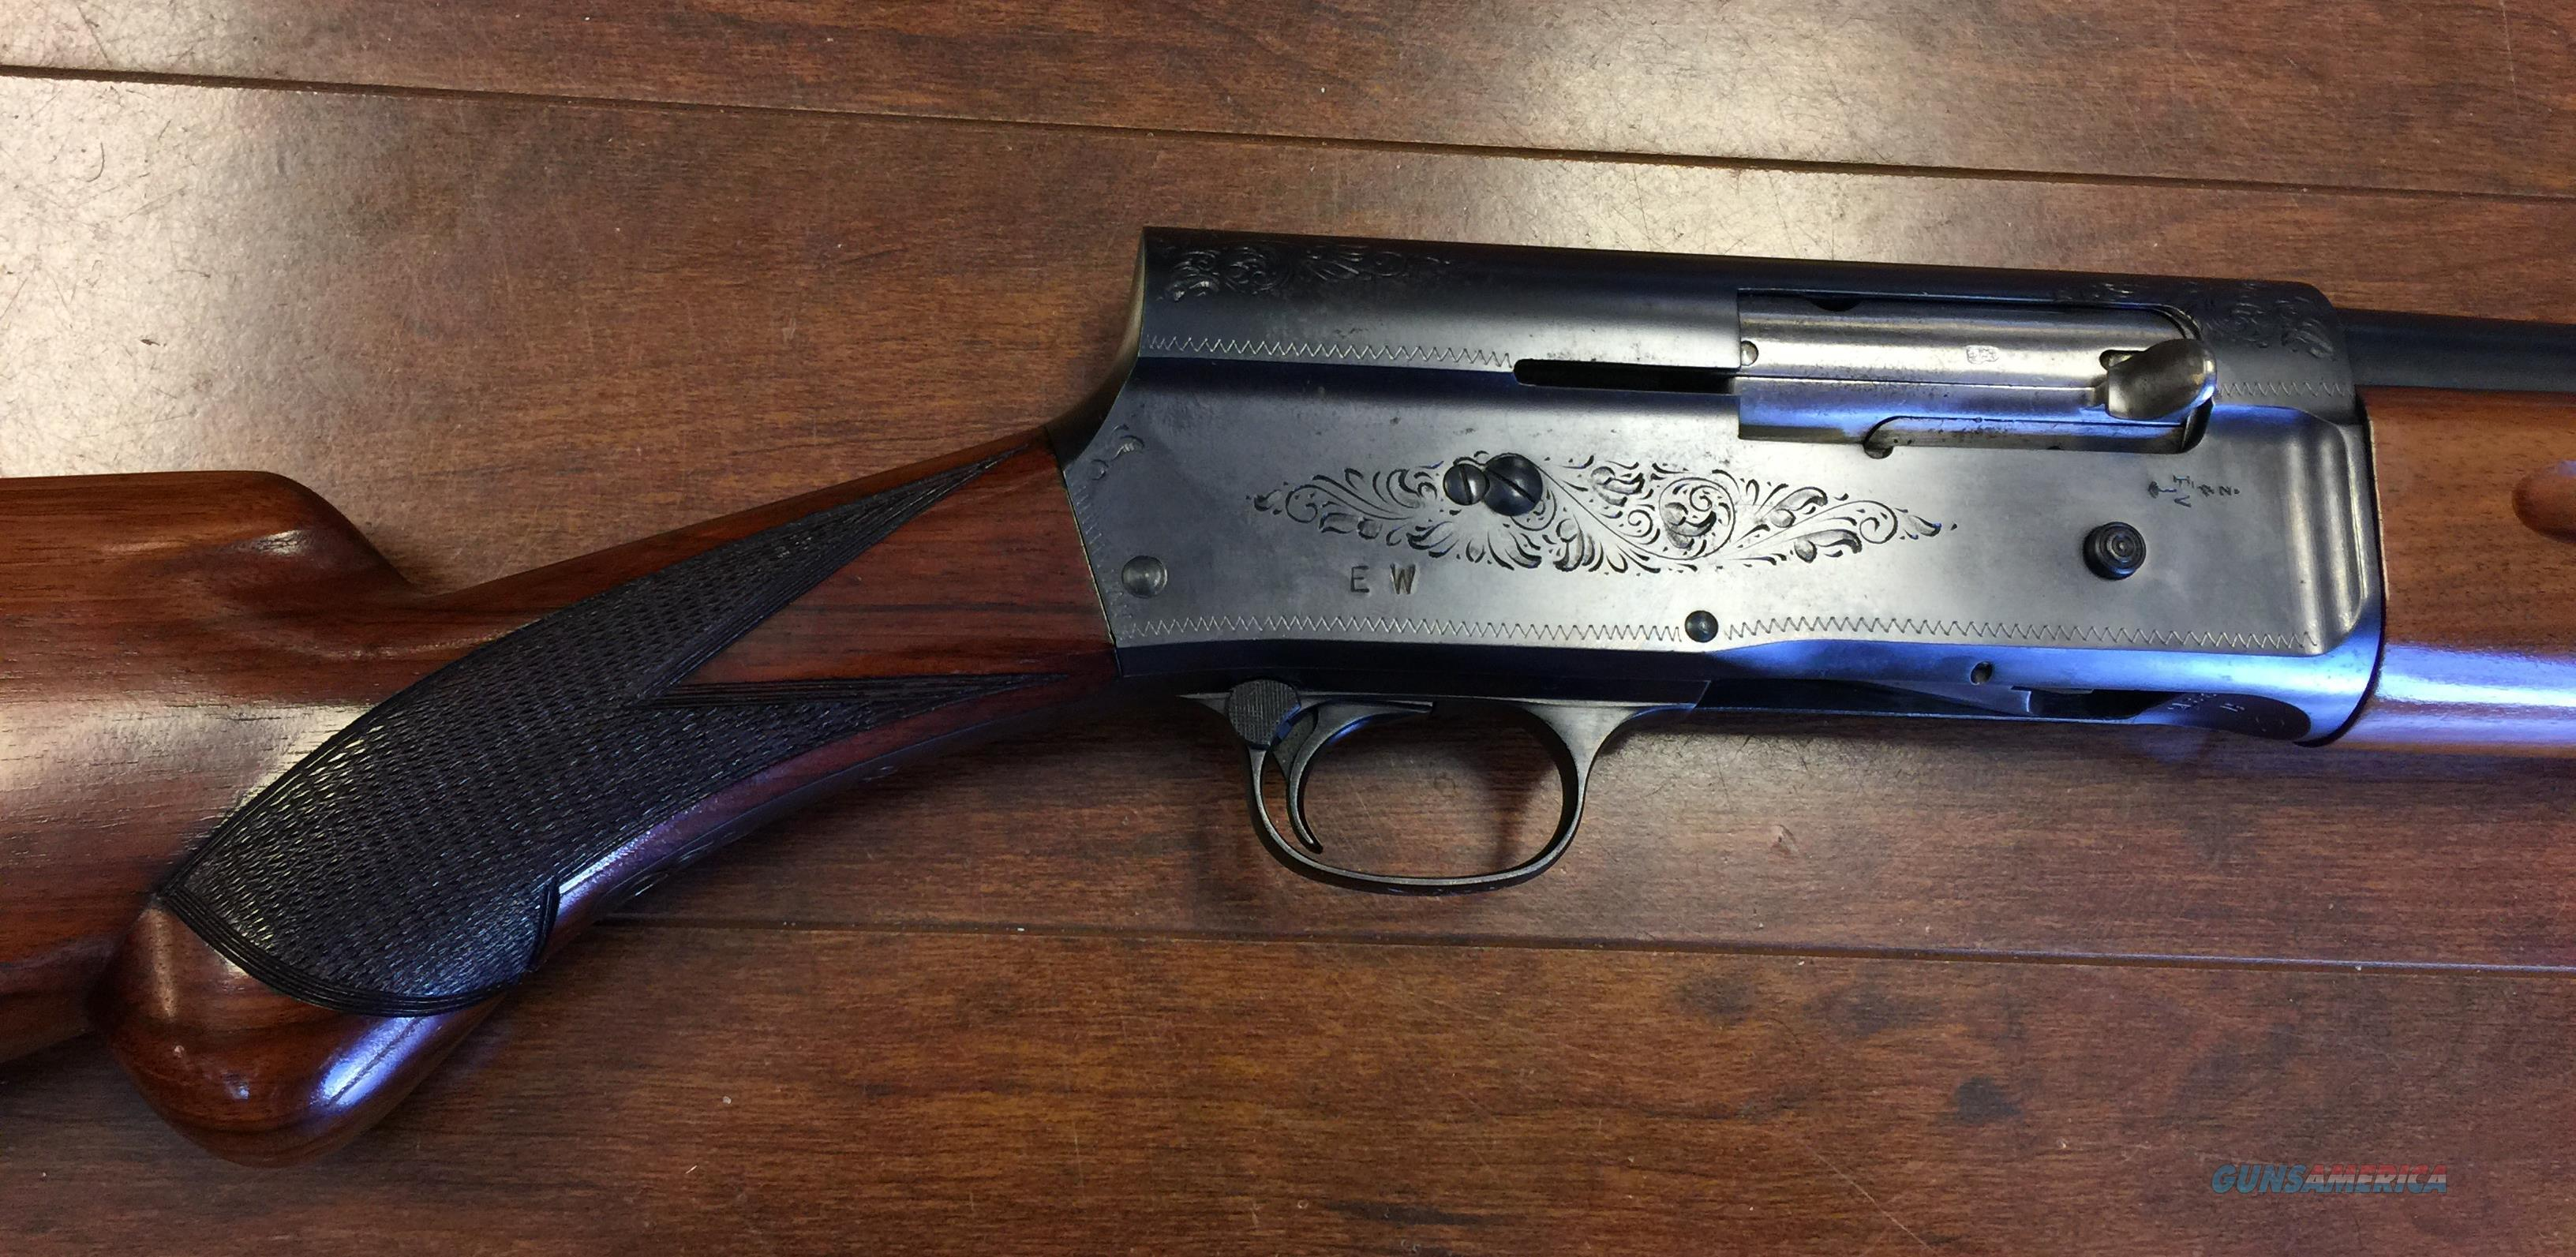 Browning a5 auto 1954 serial h2275 made in belgium by fn guns